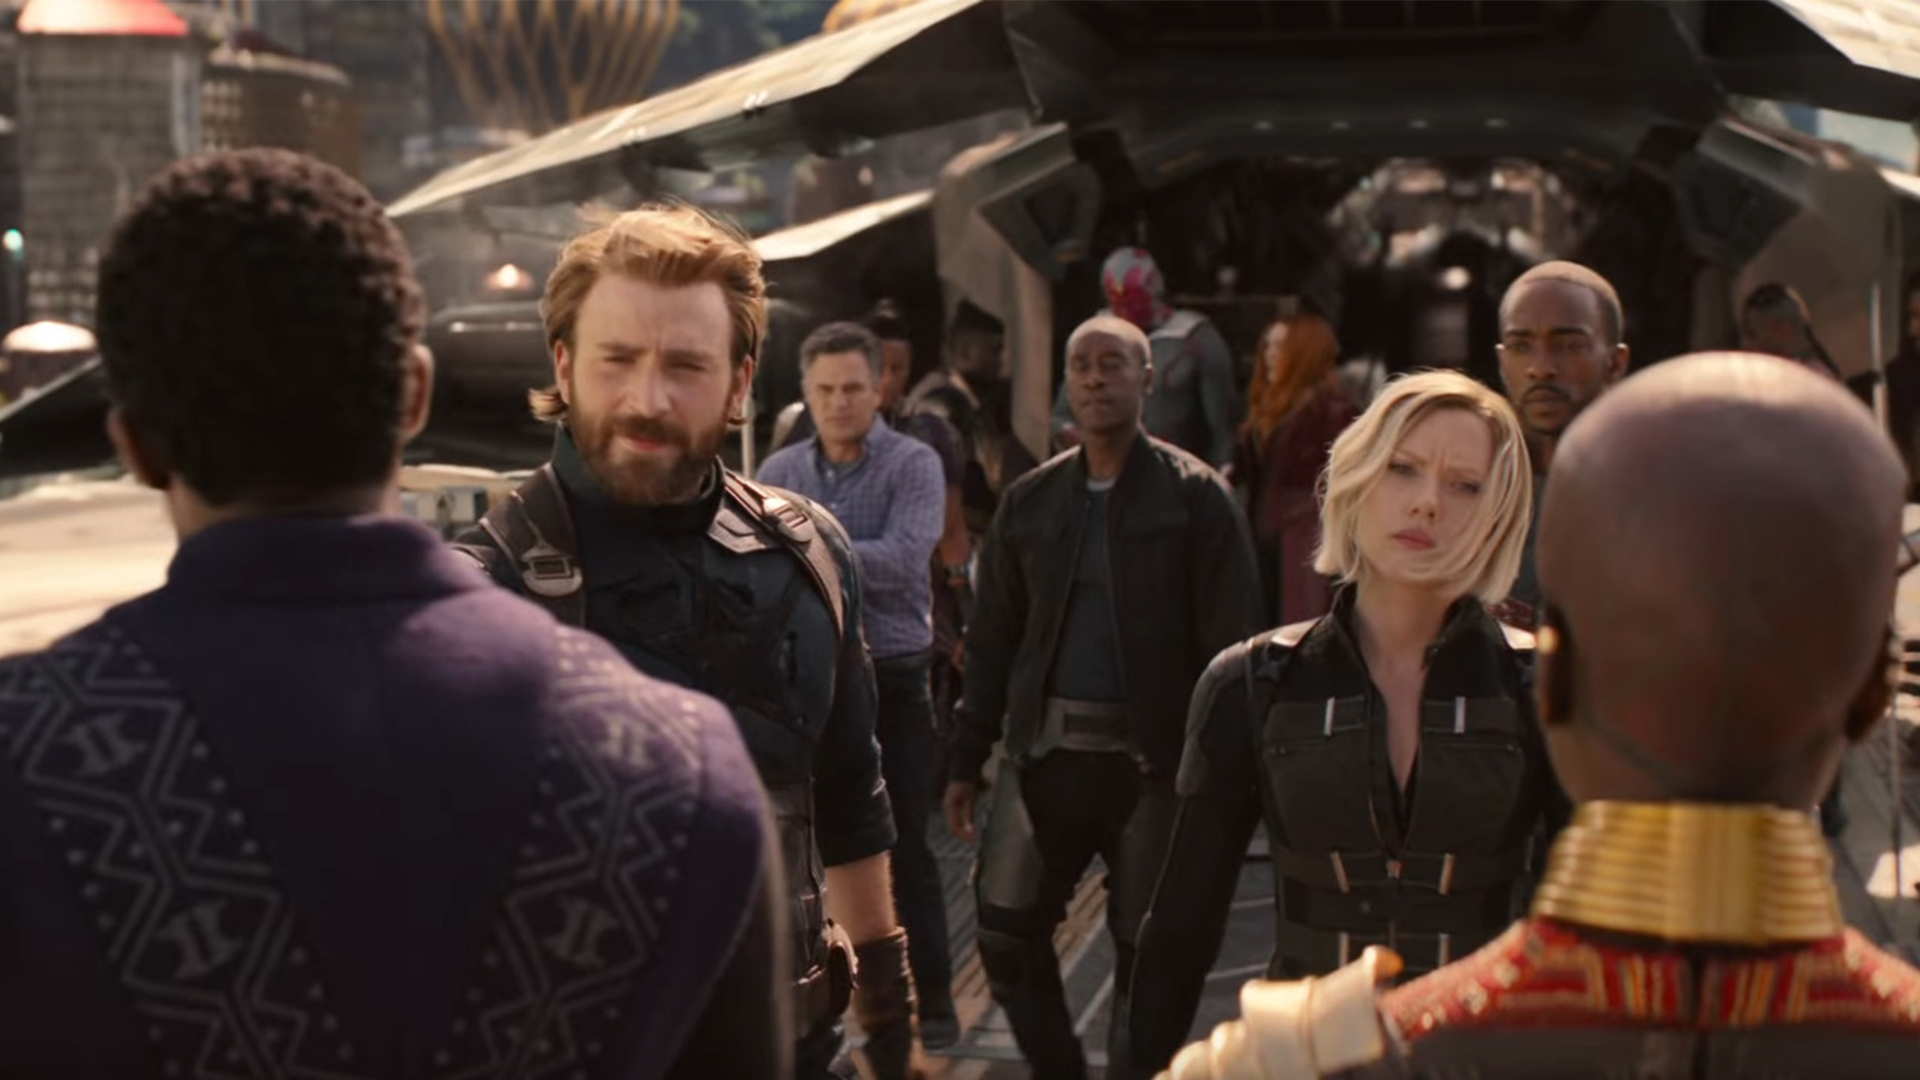 Avengers: Infinity War - 13 Major Plot Reveals From Trailer 2